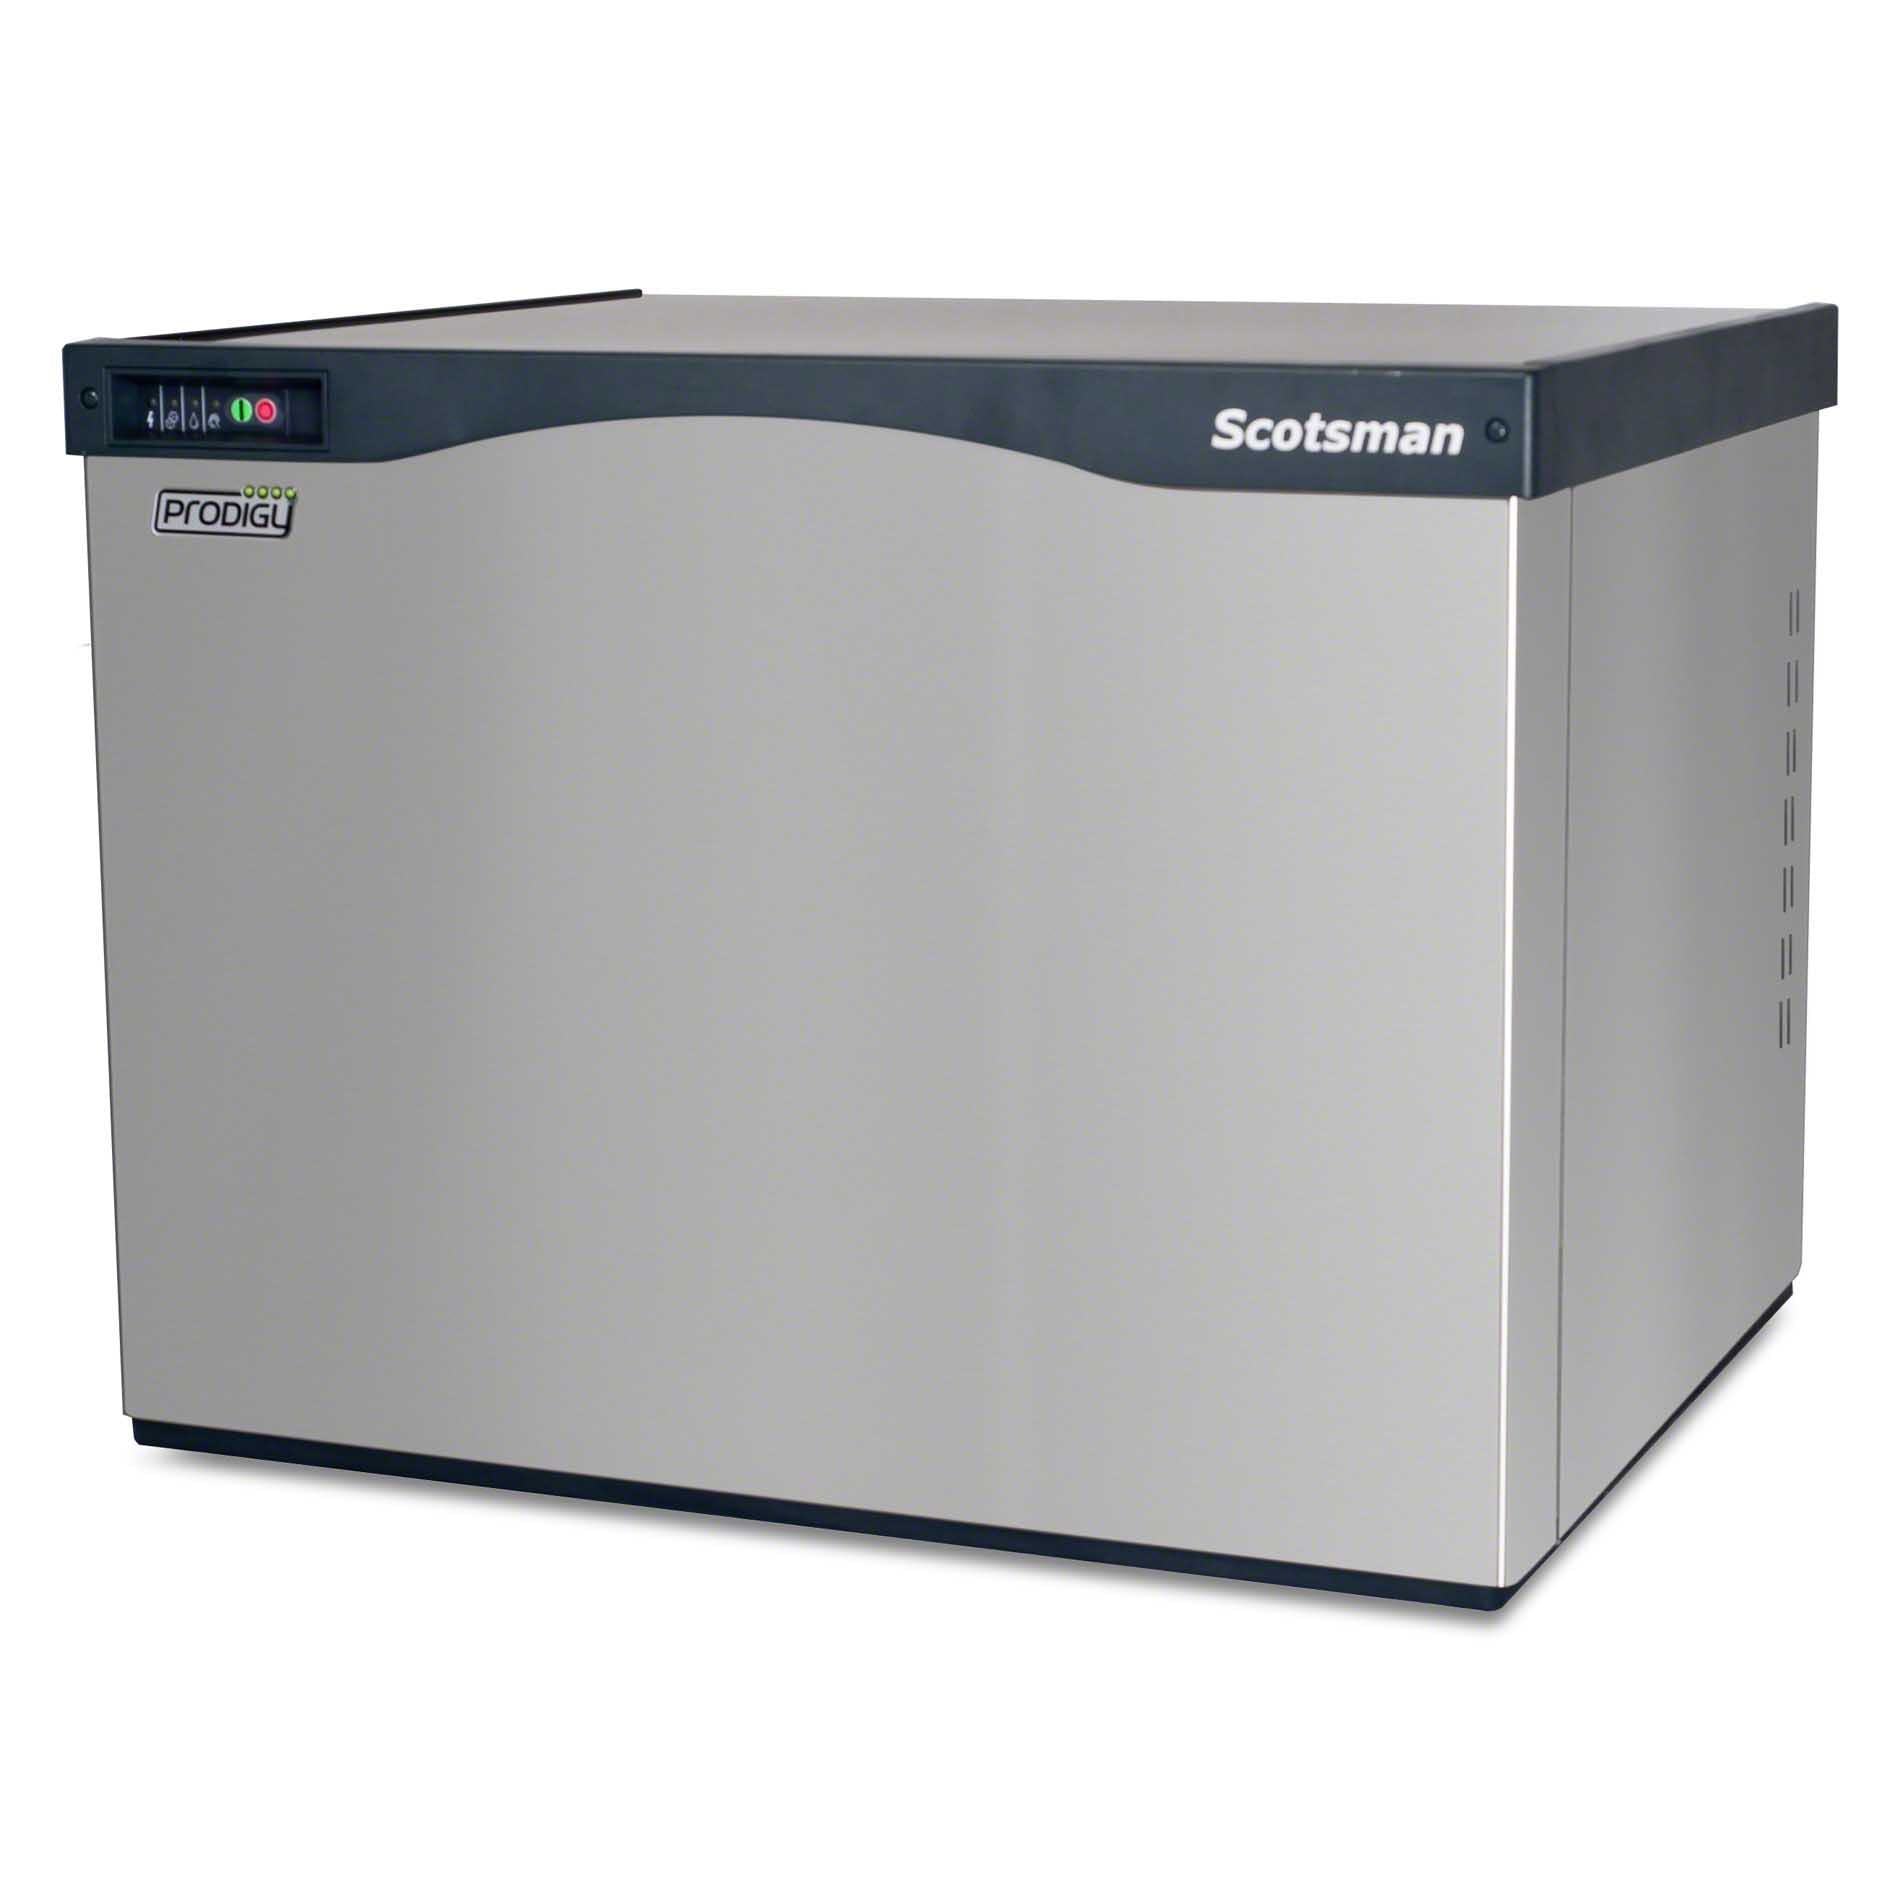 Scotsman - C0530SA-1A 562 lb Half Size Cube Ice Machine - Prodigy Series - sold by Food Service Warehouse